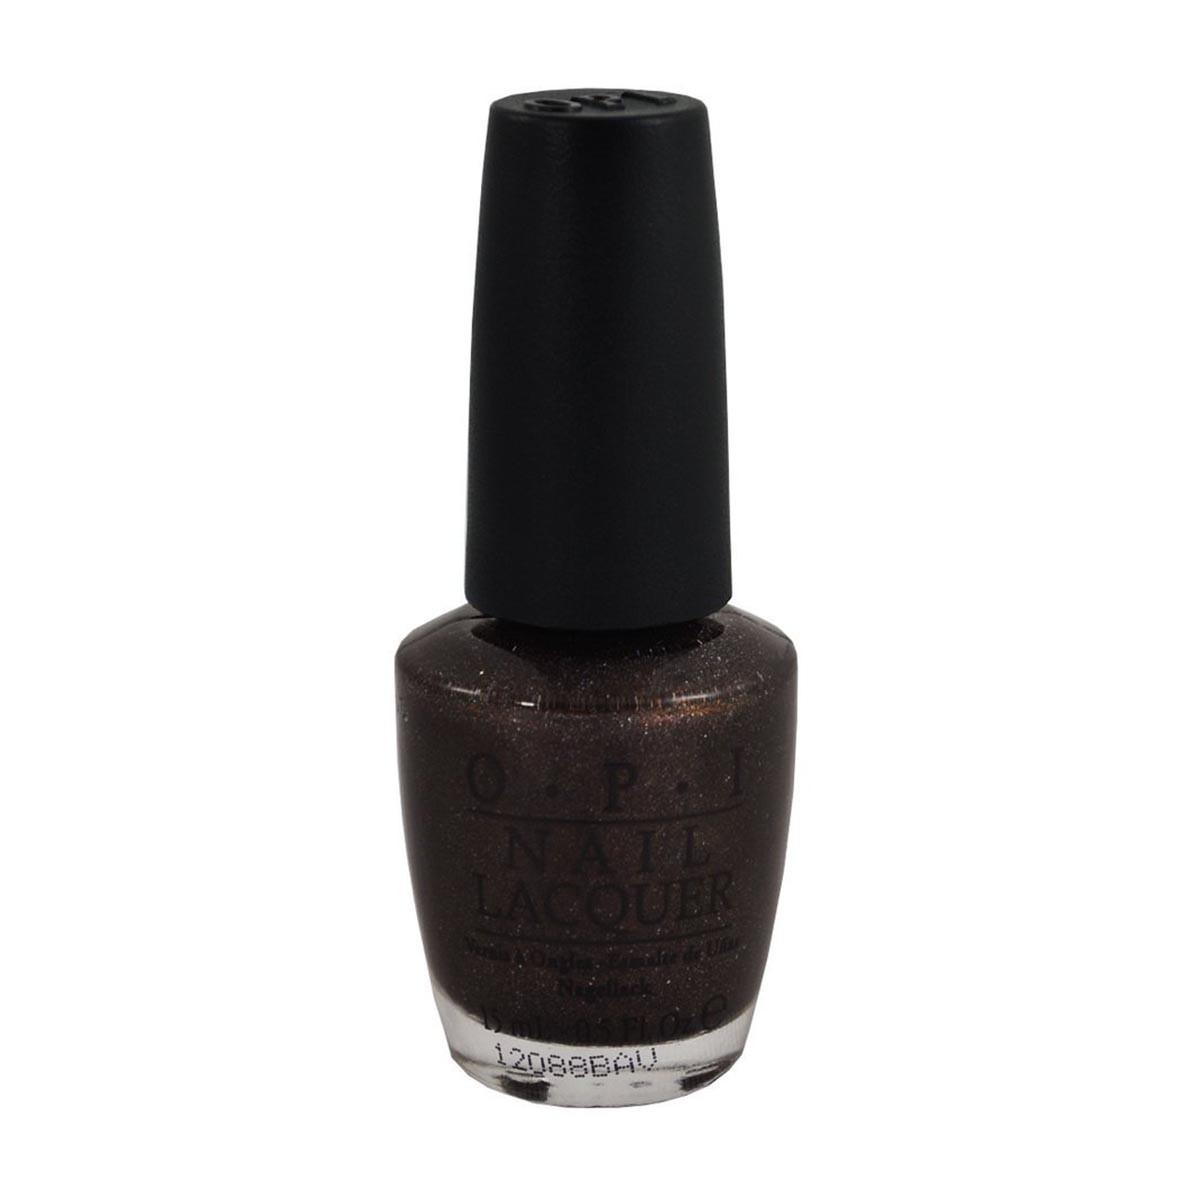 Opi fragrances Nail Lacquer Nlb59 My Private Jet